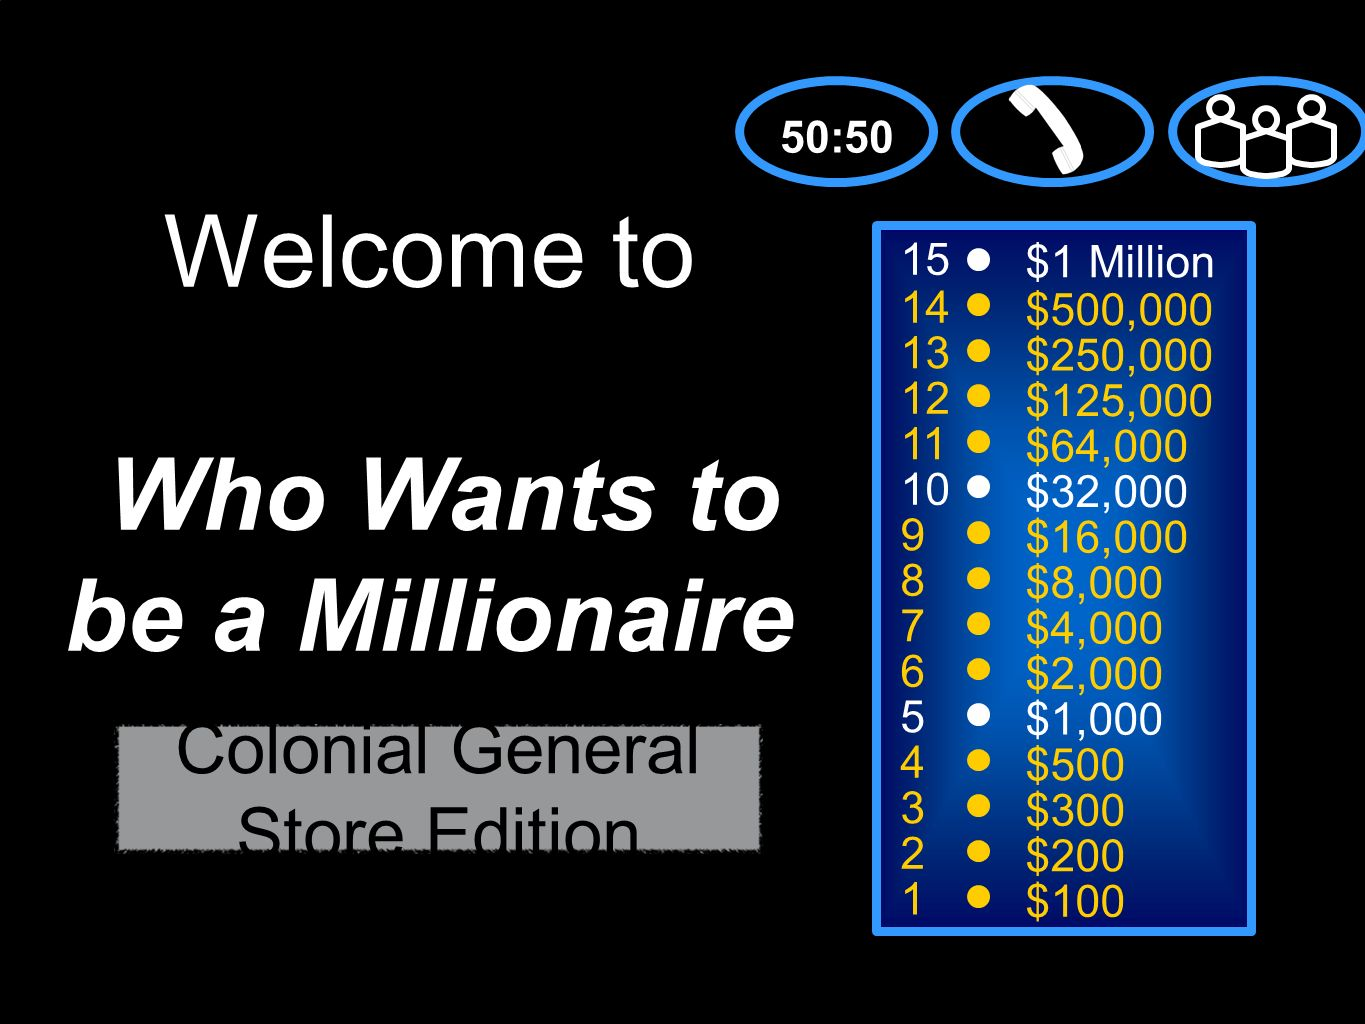 15 14 13 12 11 10 9 8 7 6 5 4 3 2 1 $1 Million $500,000 $250,000 $125,000 $64,000 $32,000 $16,000 $8,000 $4,000 $2,000 $1,000 $500 $300 $200 $100 Welcome to Who Wants to be a Millionaire 50:50 Colonial General Store Edition